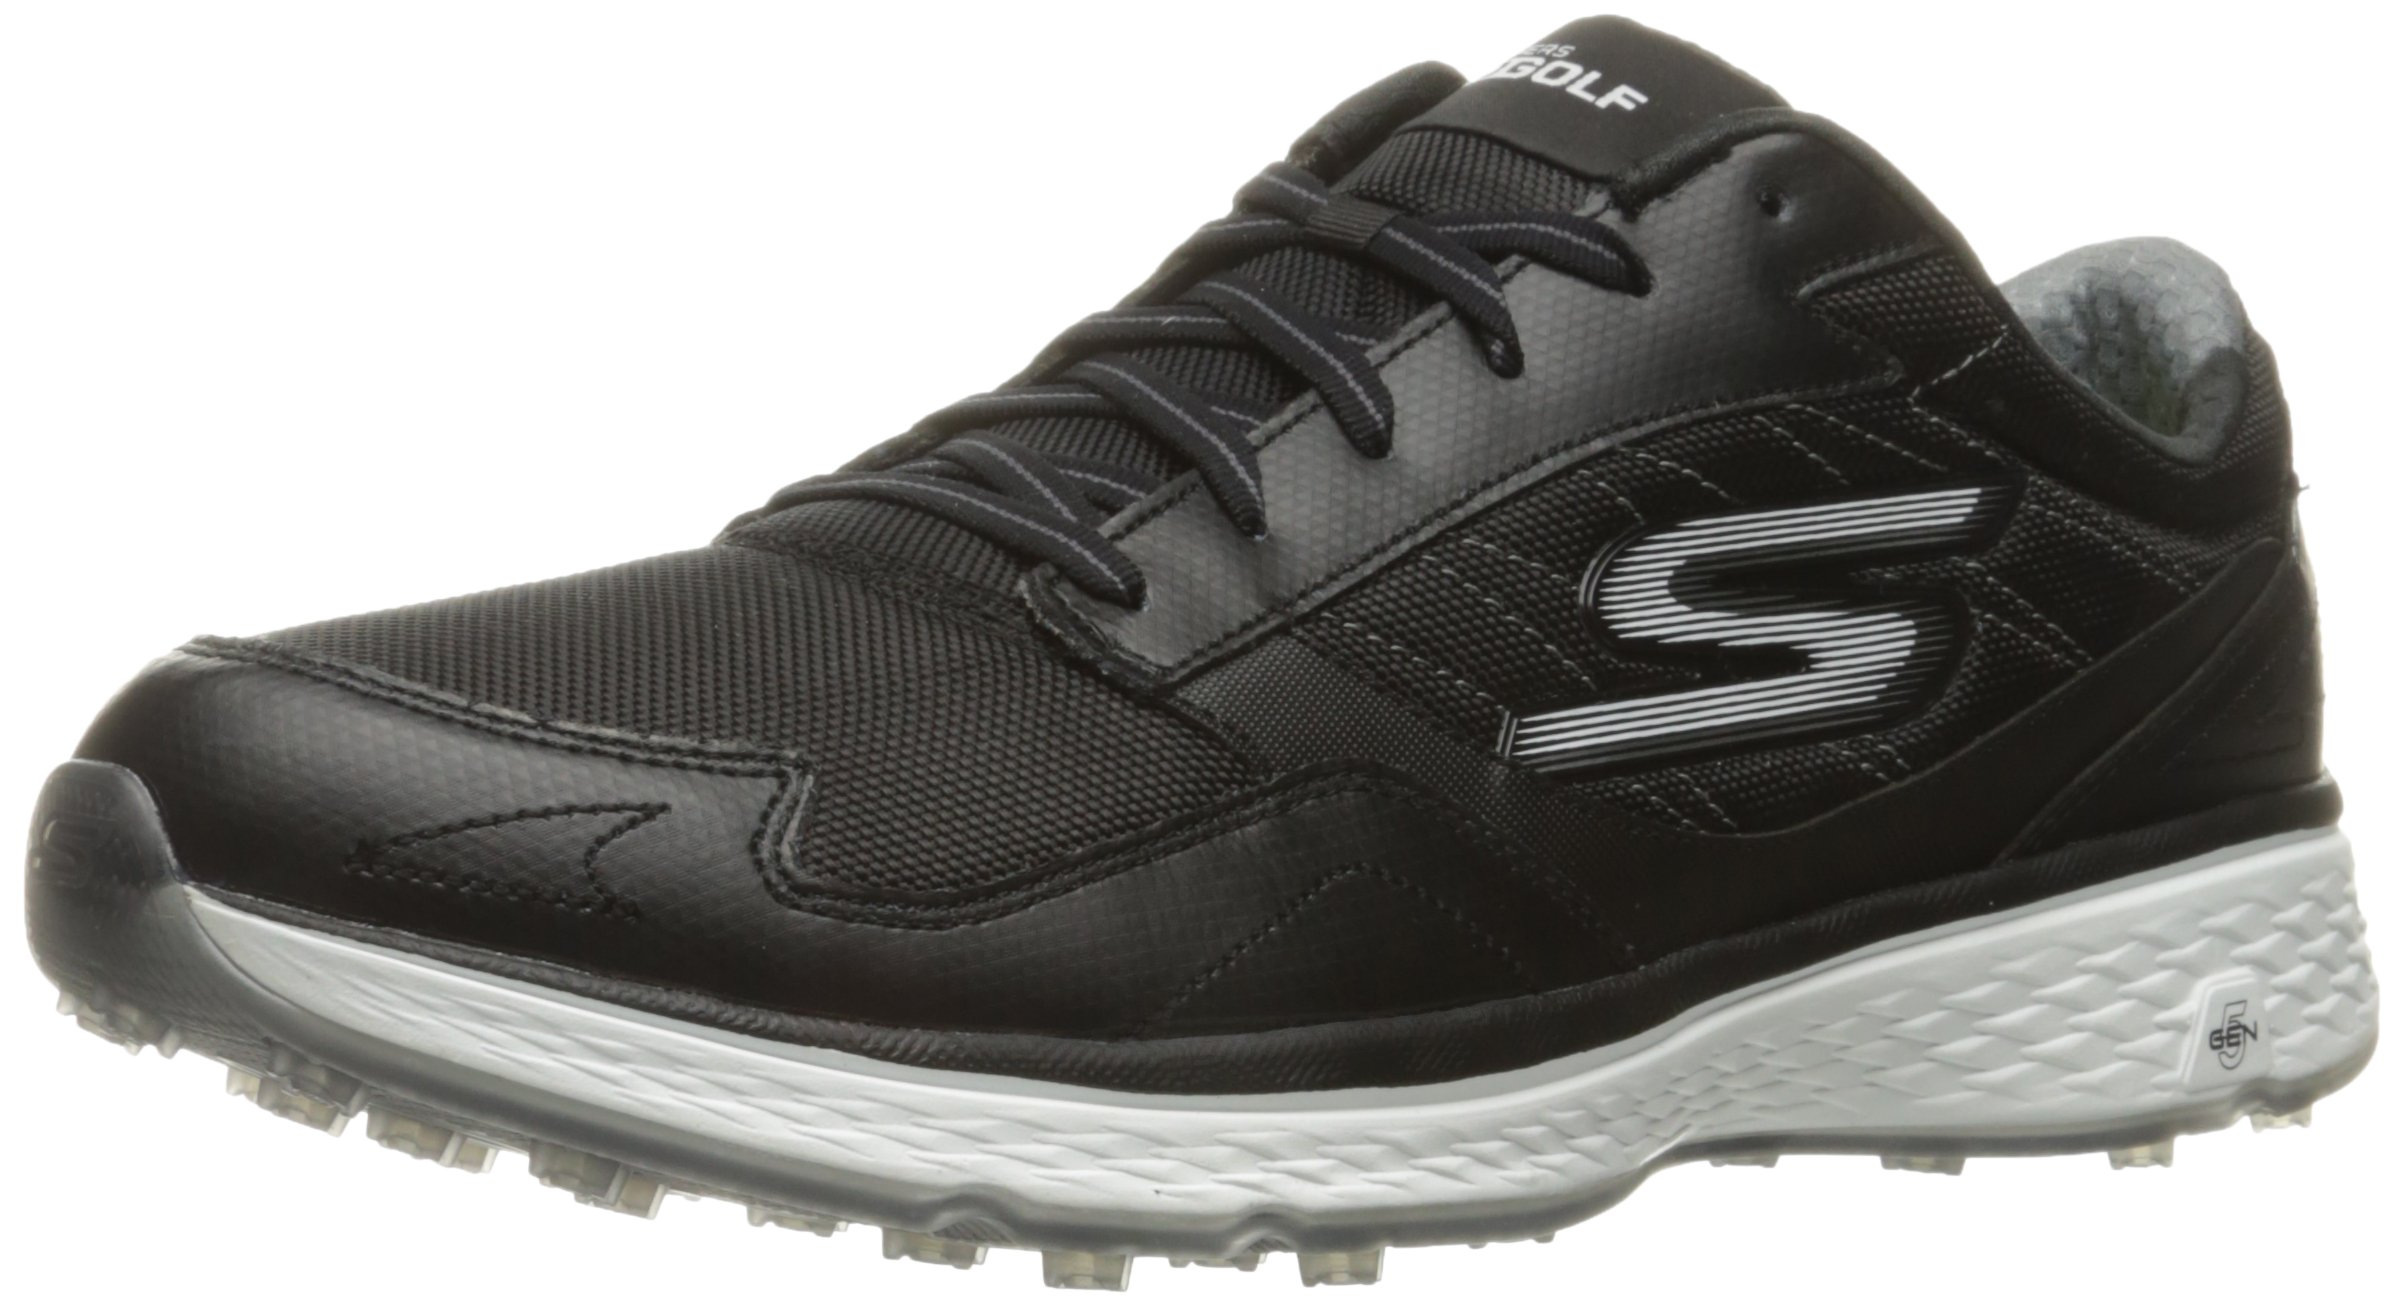 Skechers Golf Men's Go Golf Fairway Golf Shoe, Black/White, 10.5 M US by Skechers